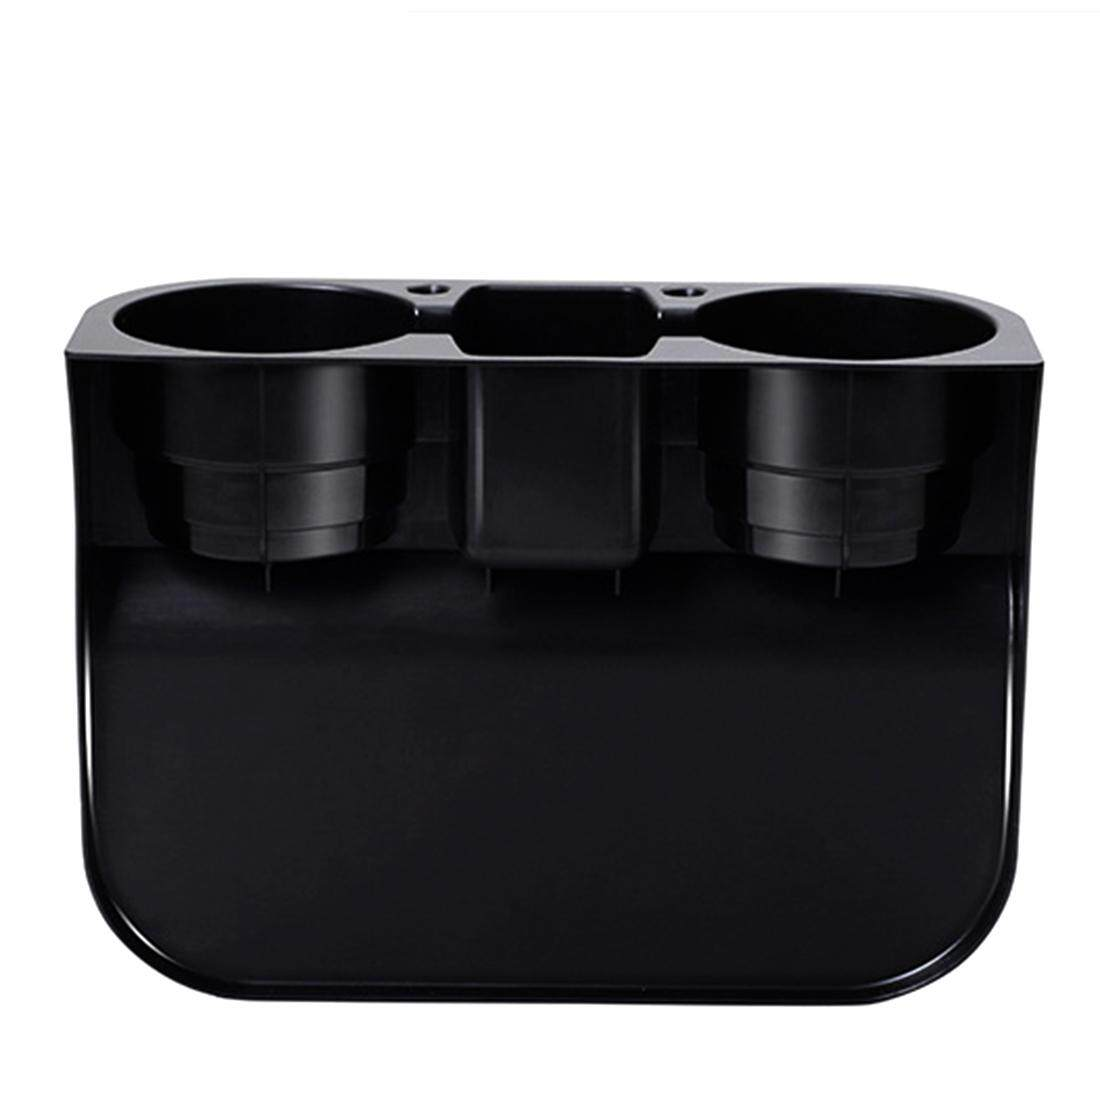 Multifunction Car Auto Cup Holder Vehicle Seat Cup Cell Phone Drinks Holder Glove Box Car Interior